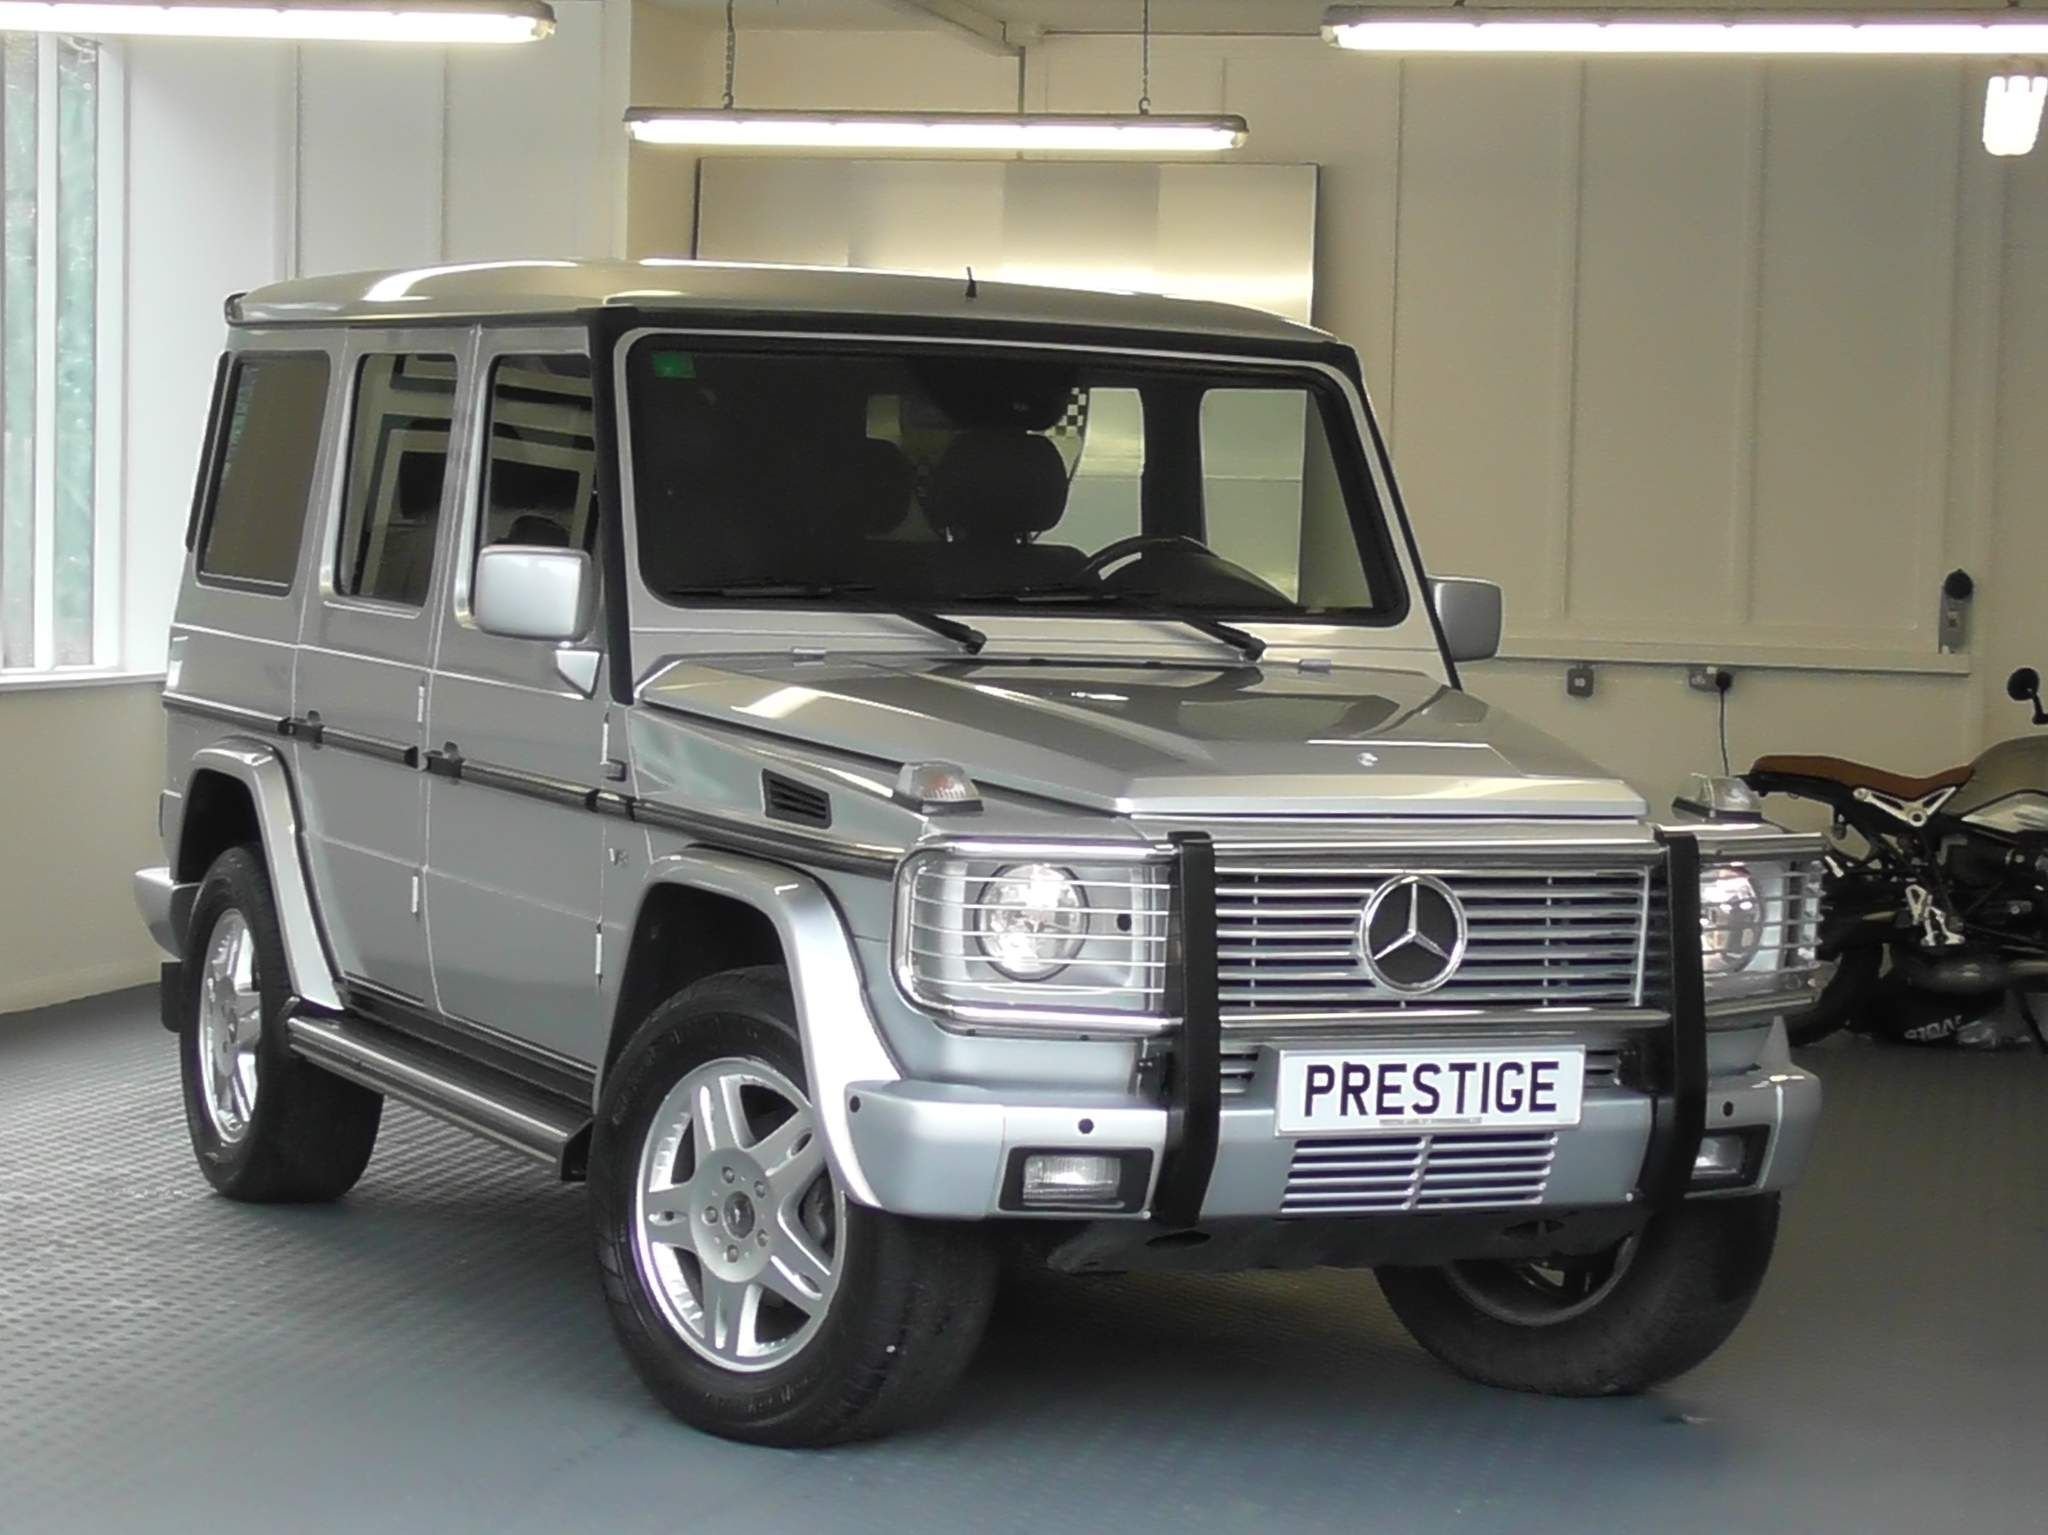 Silver Mercedes Benz G Class Used Cars For Sale Autotrader Uk